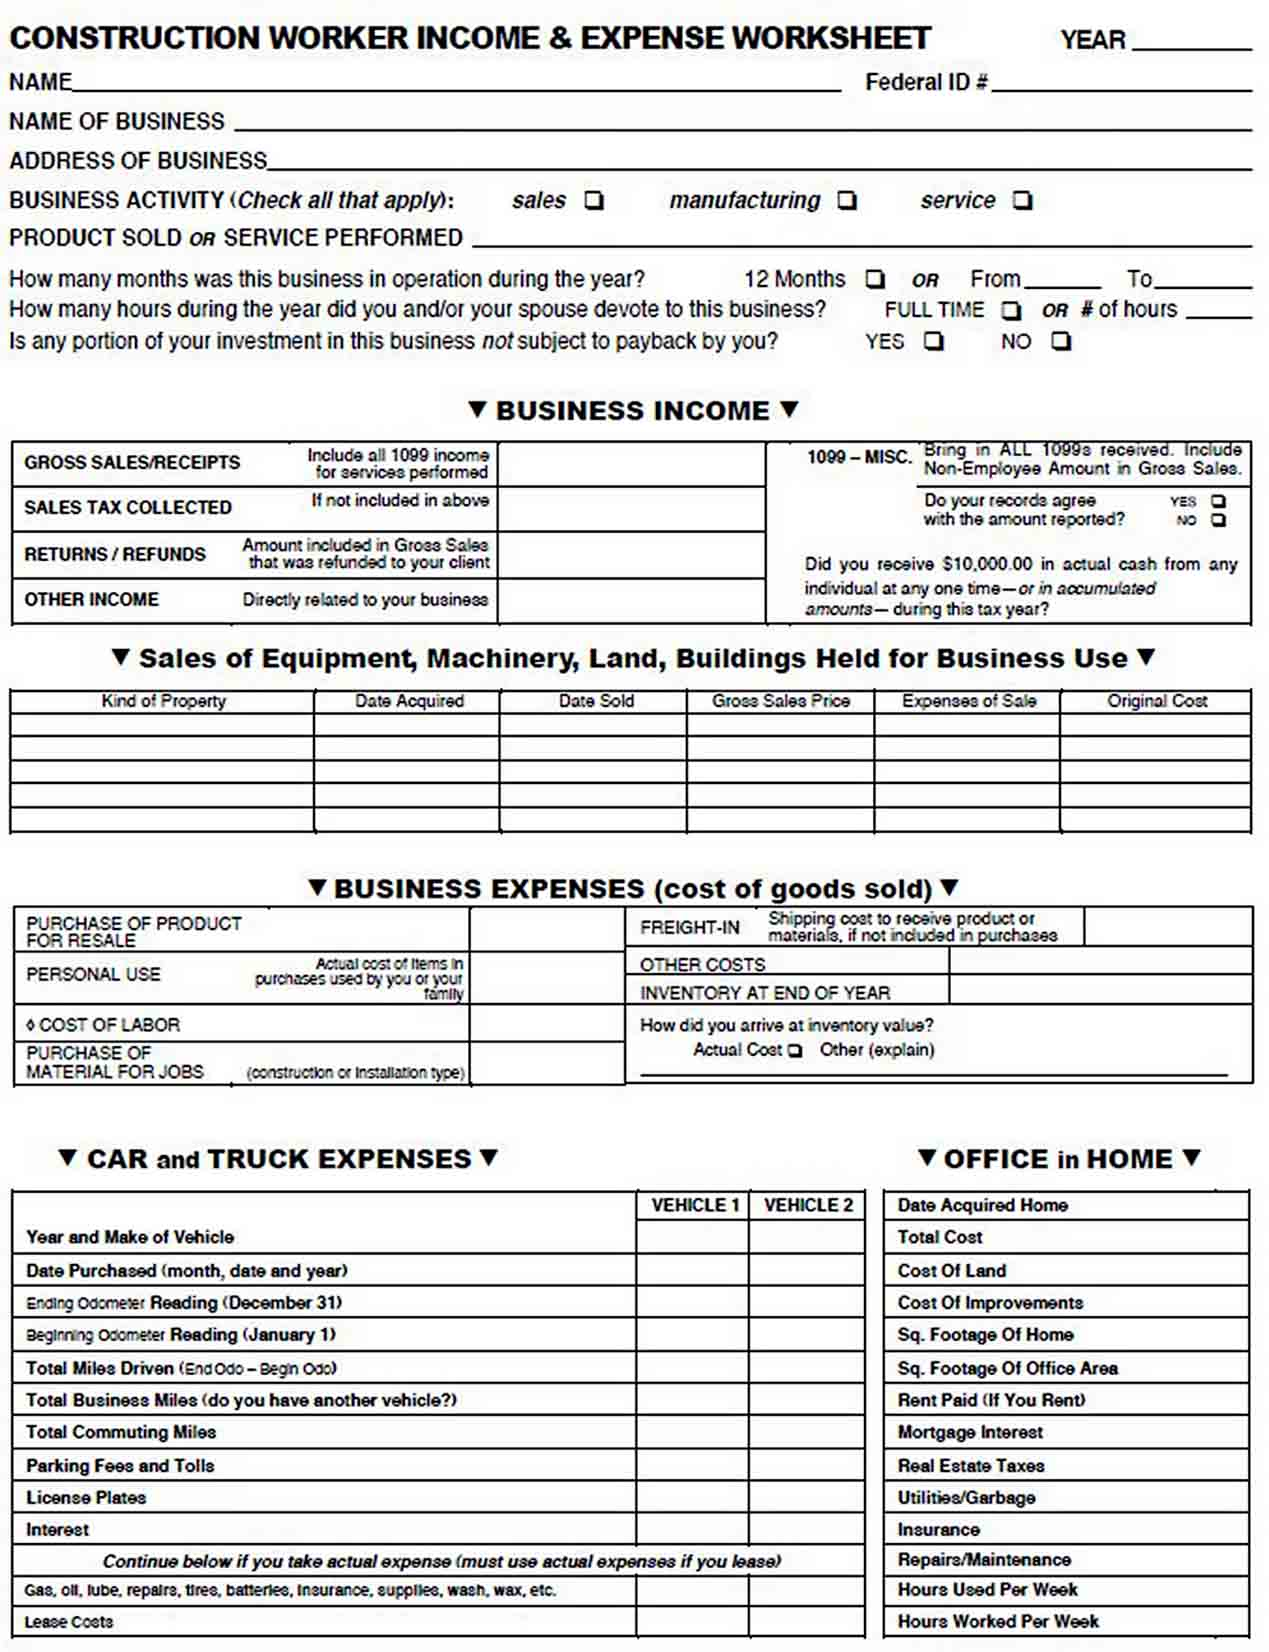 Construction Company Expense Report sample